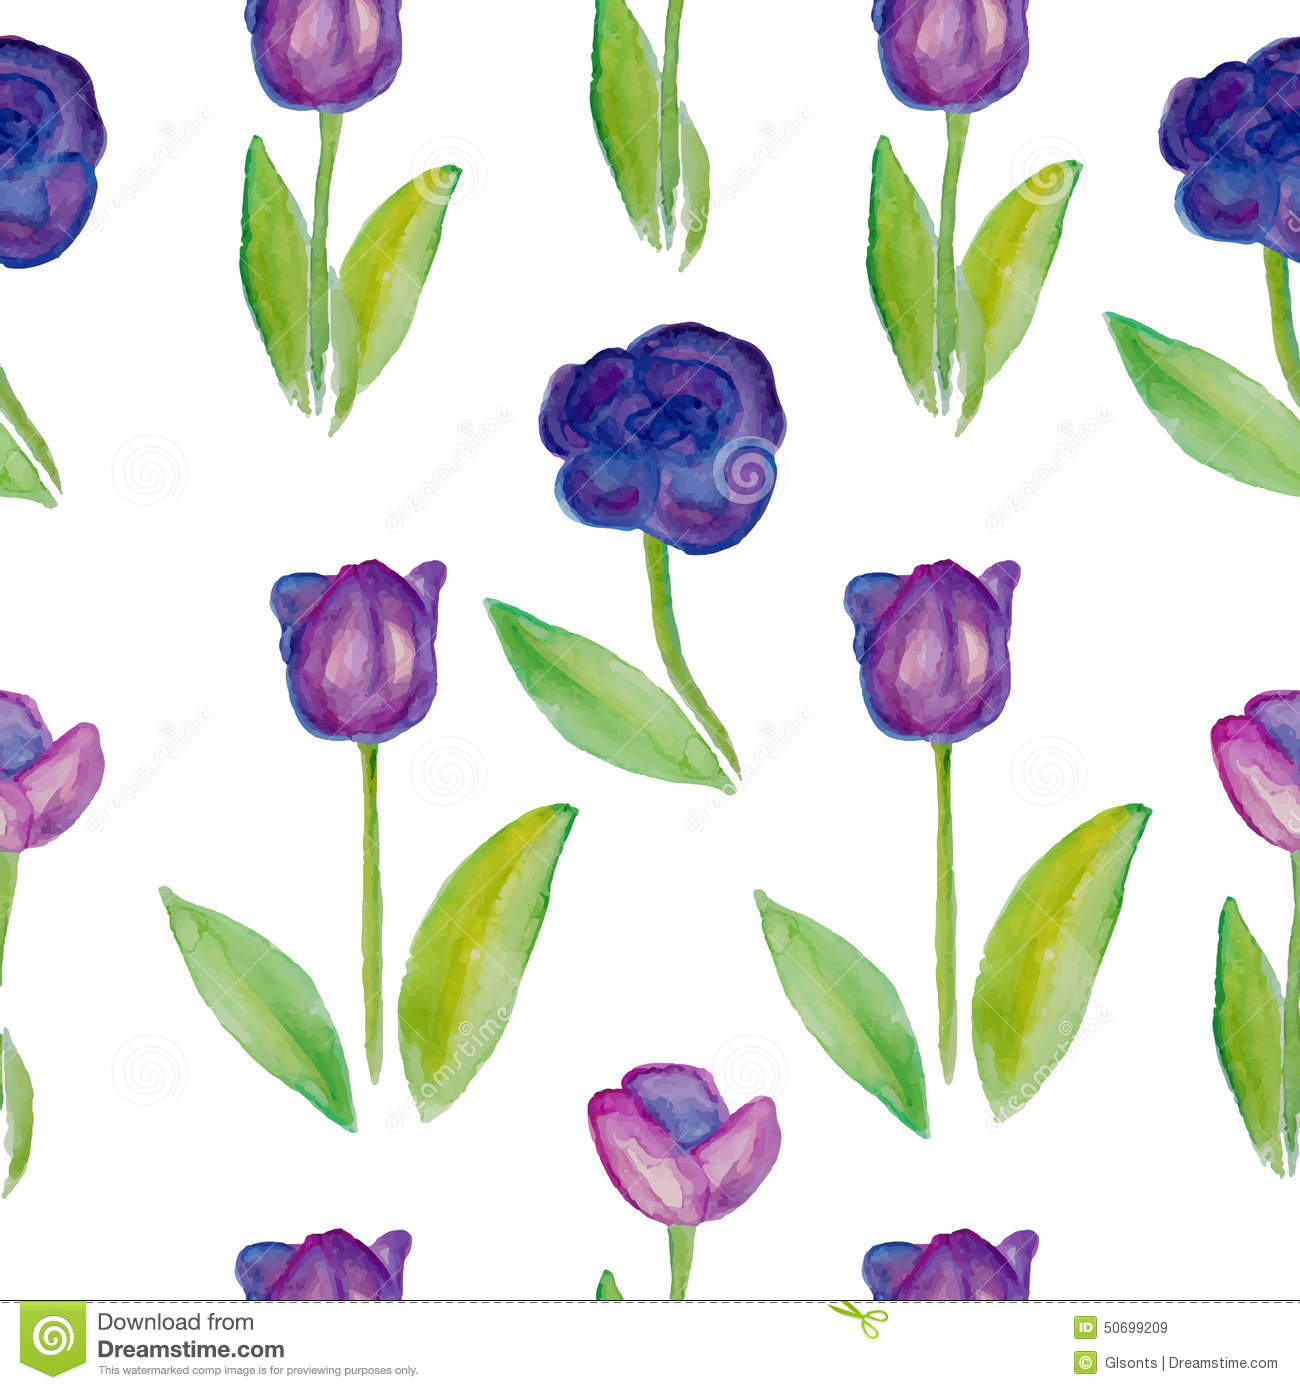 floral seamless pattern tulips  violet flowers with green leafs   stock vector